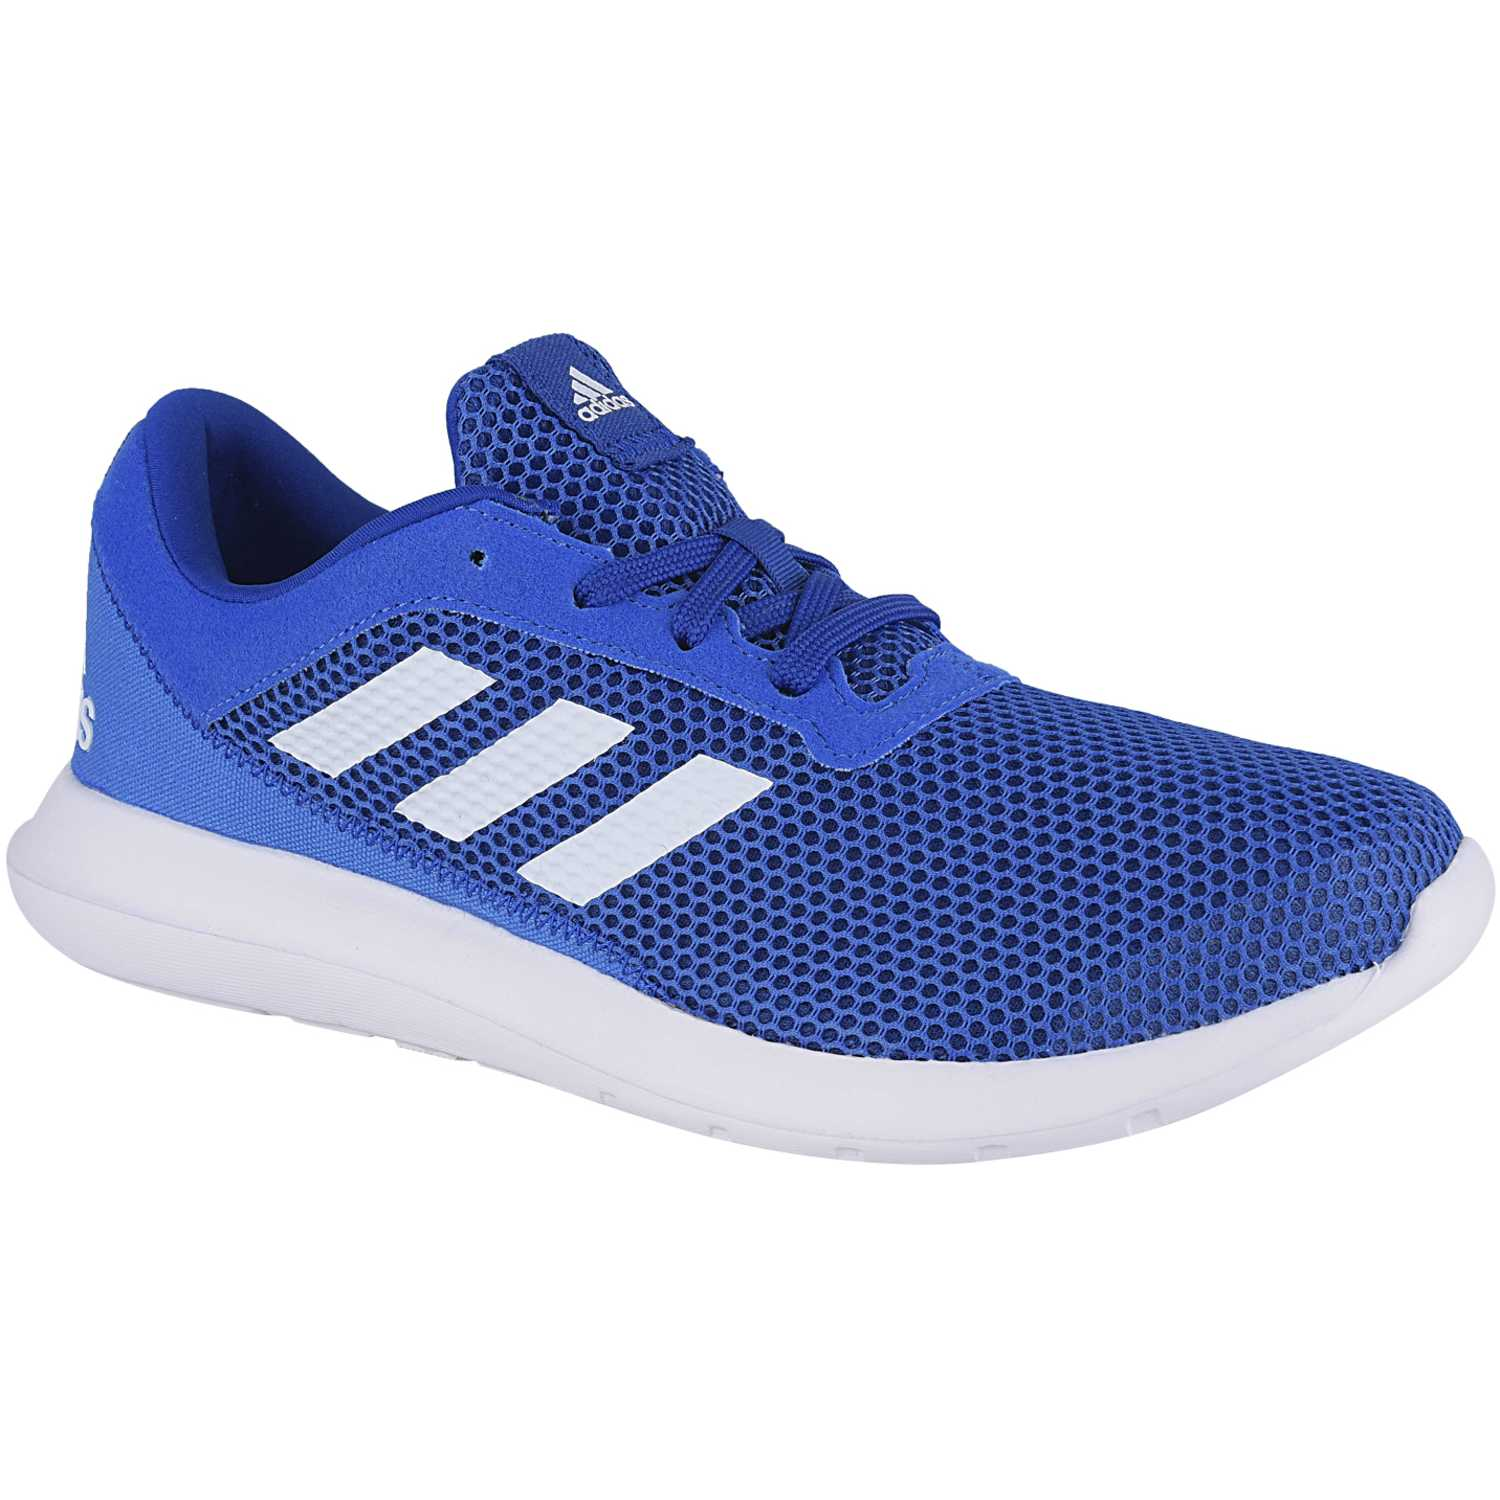 reputable site bf3d9 1feb8 Zapatilla de Hombre adidas Azul   Blanco element refresh 3 m